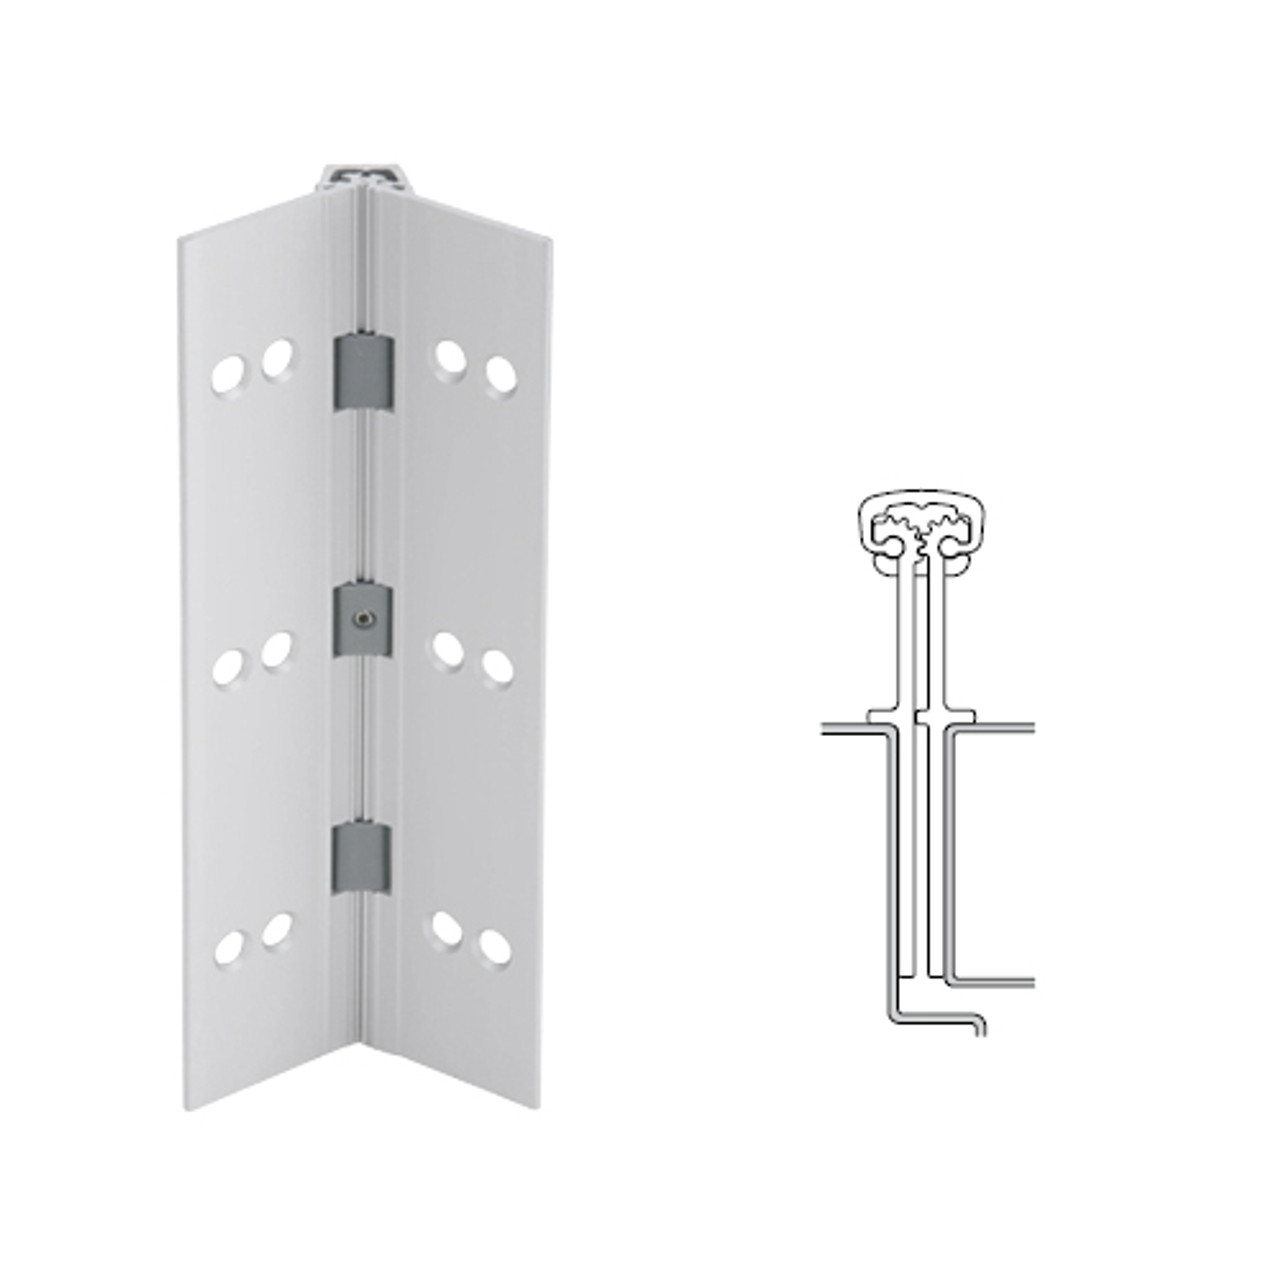 040XY-US28-95-WD IVES Full Mortise Continuous Geared Hinges with Wood Screws in Satin Aluminum